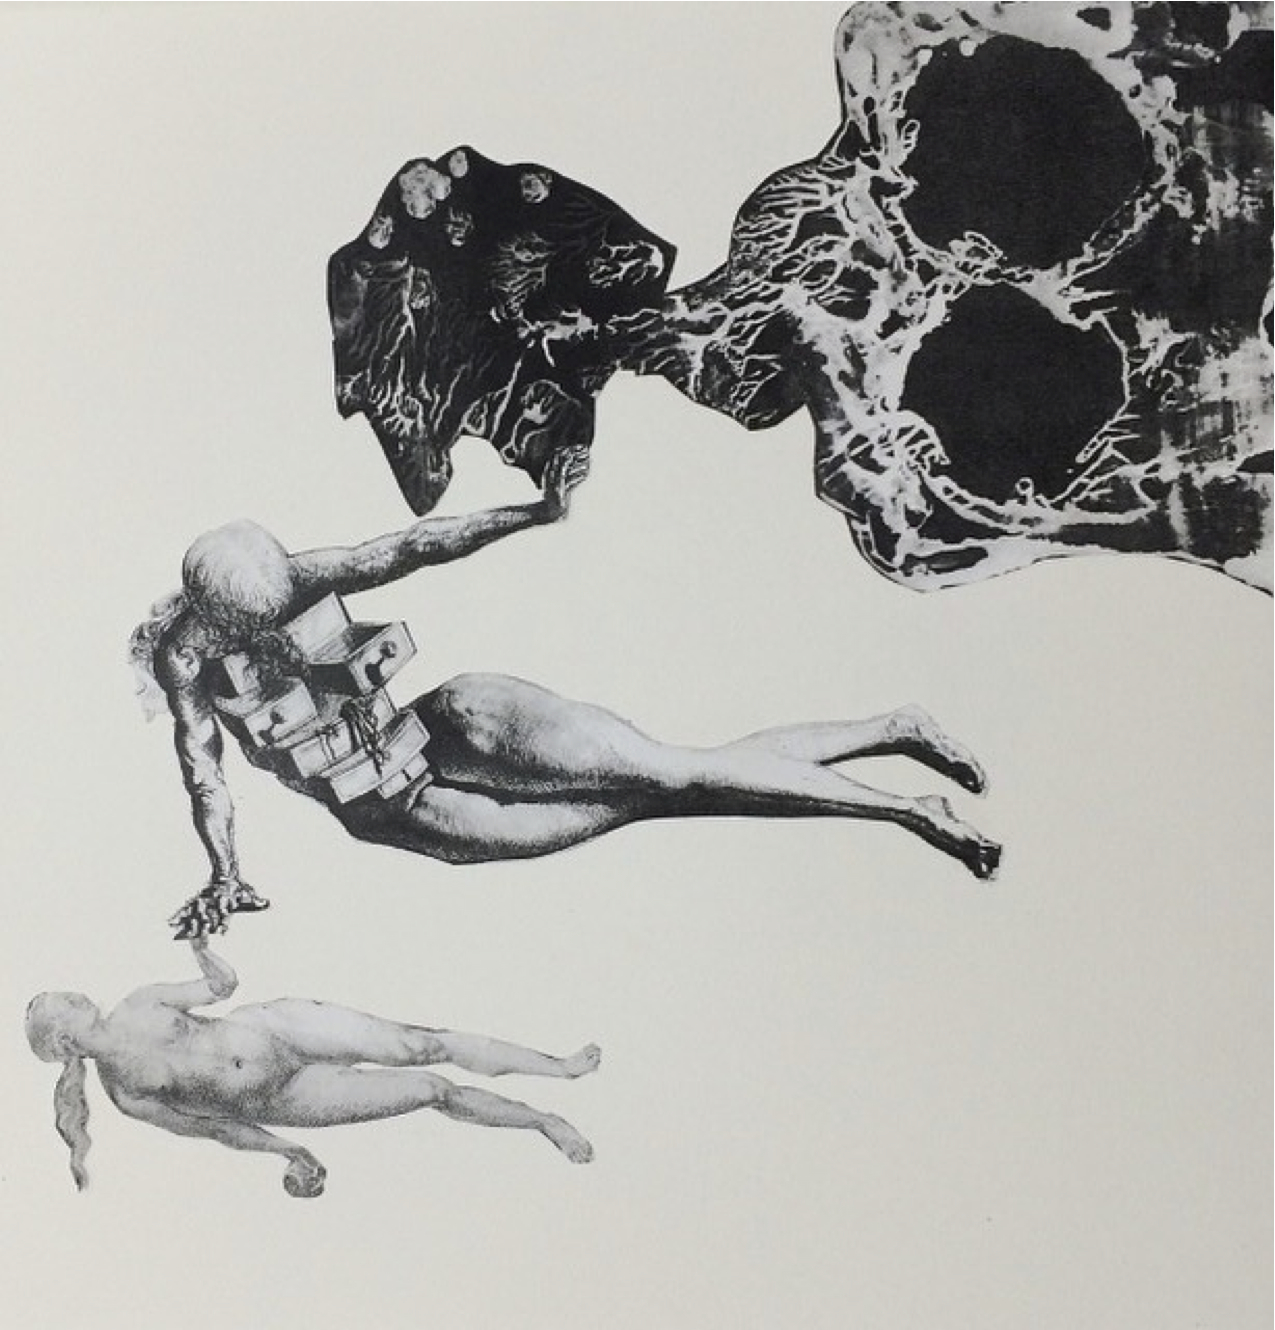 """Covenant artists including junior art majors Sarabeth Kendall and Meghan Earll have been contemplating issues of gender and identity in their respective art practices. In Kendall's """"Volume,"""" pictured above, the artists uses wire to suggest the form of a bra and the implication of its taboo nature. Pictured below, a partial of Earll's collage titled """"Adam and Eve"""" takes images from art history to explore a biblical concept of identity. Photos taken with permission from the artists' Instagrams."""